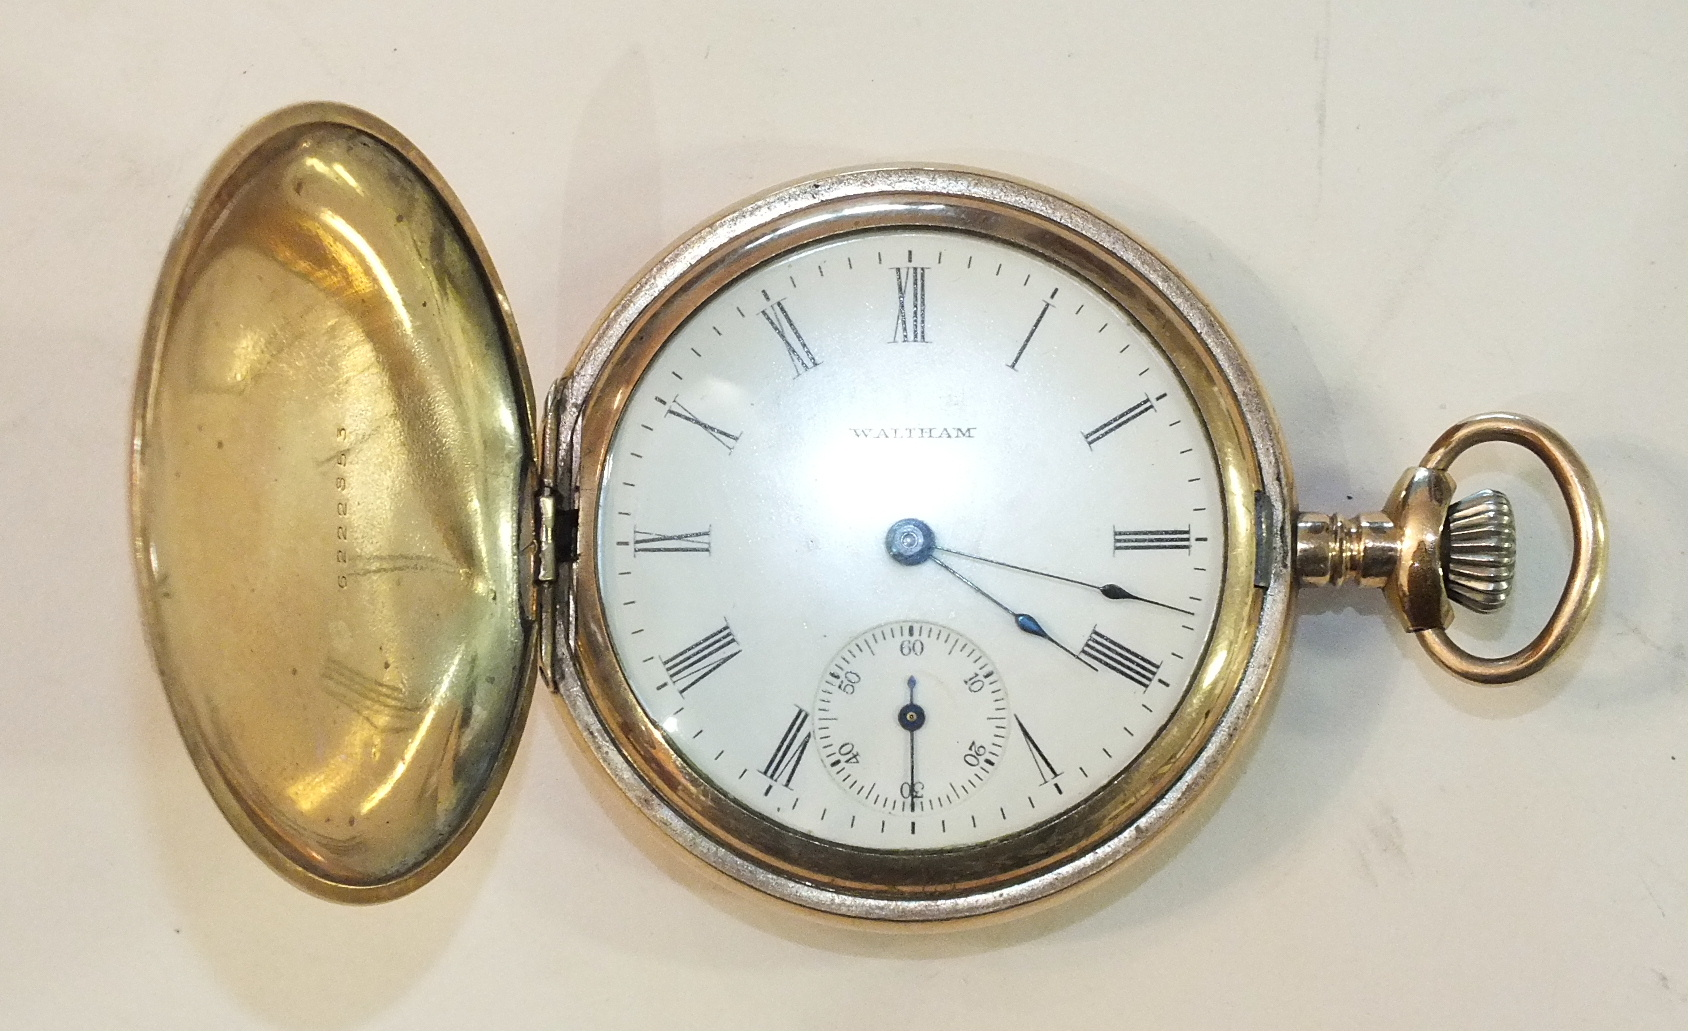 Lot 187 - A gold-plated hunter-cased Waltham pocket watch with white enamel dial, Roman numerals and seconds